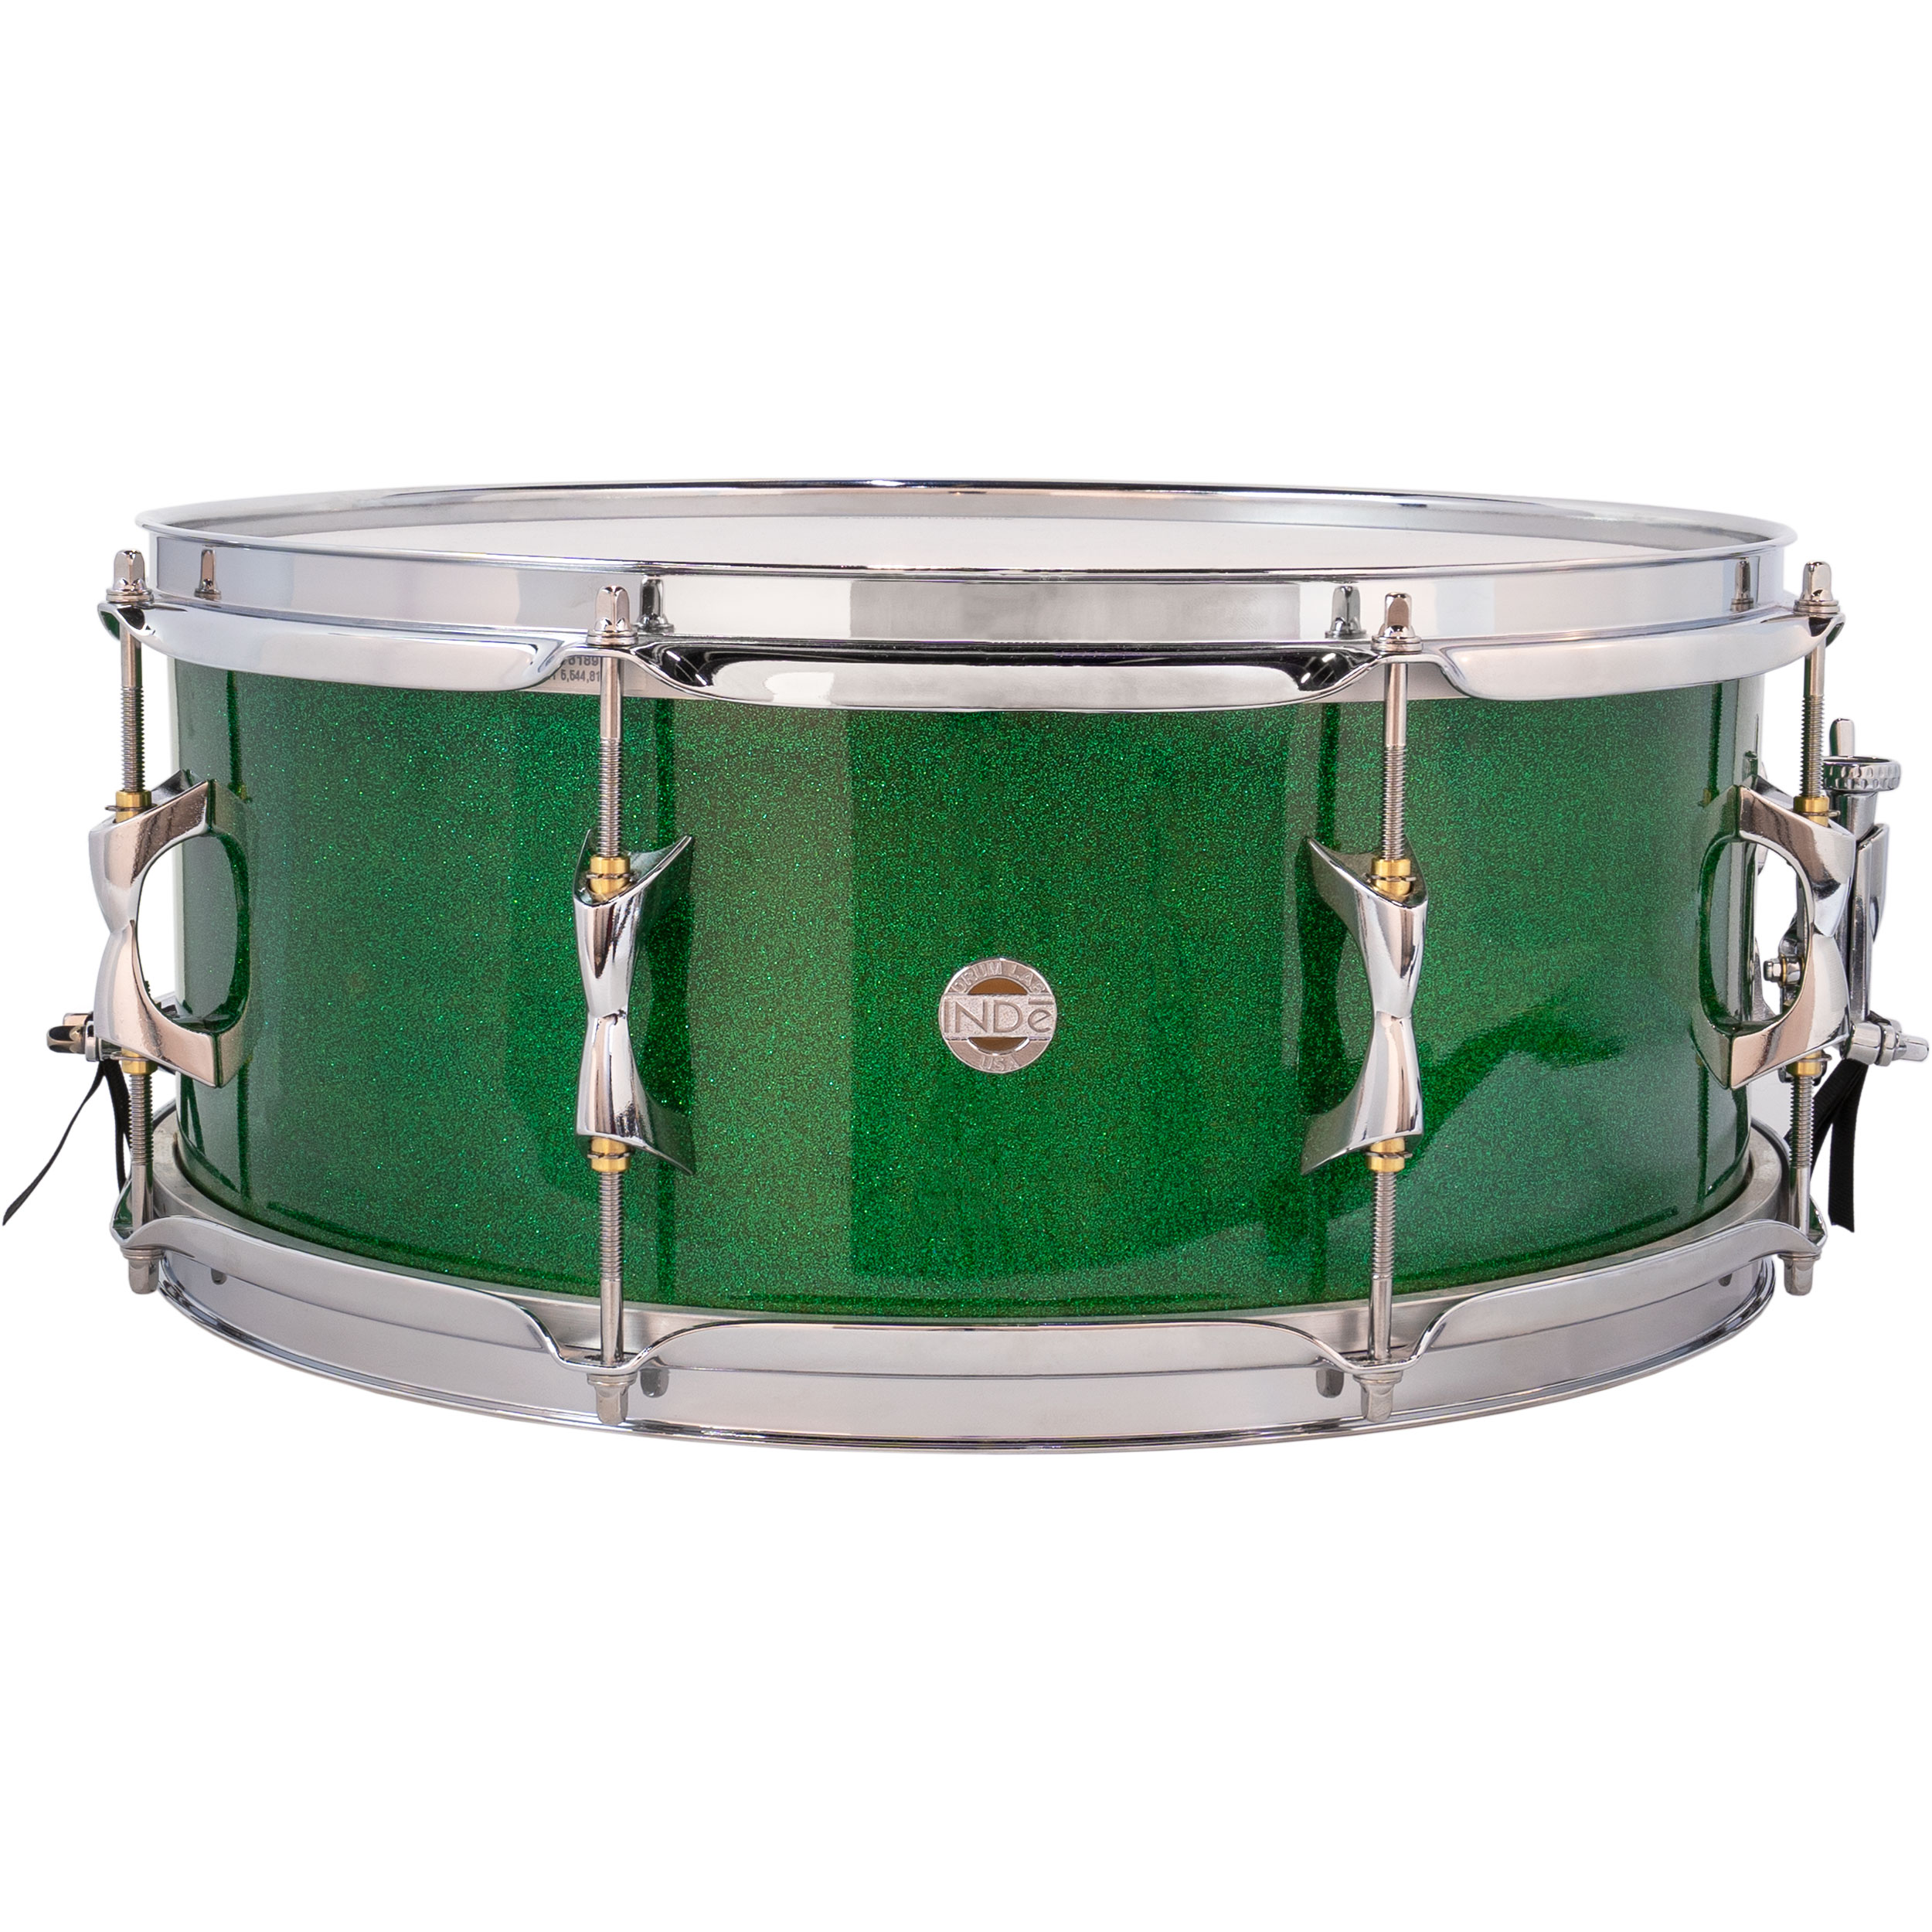 "Inde 6.5"" x 15"" ResoArmor Snare Drum in Green Sparkle (Demo)"